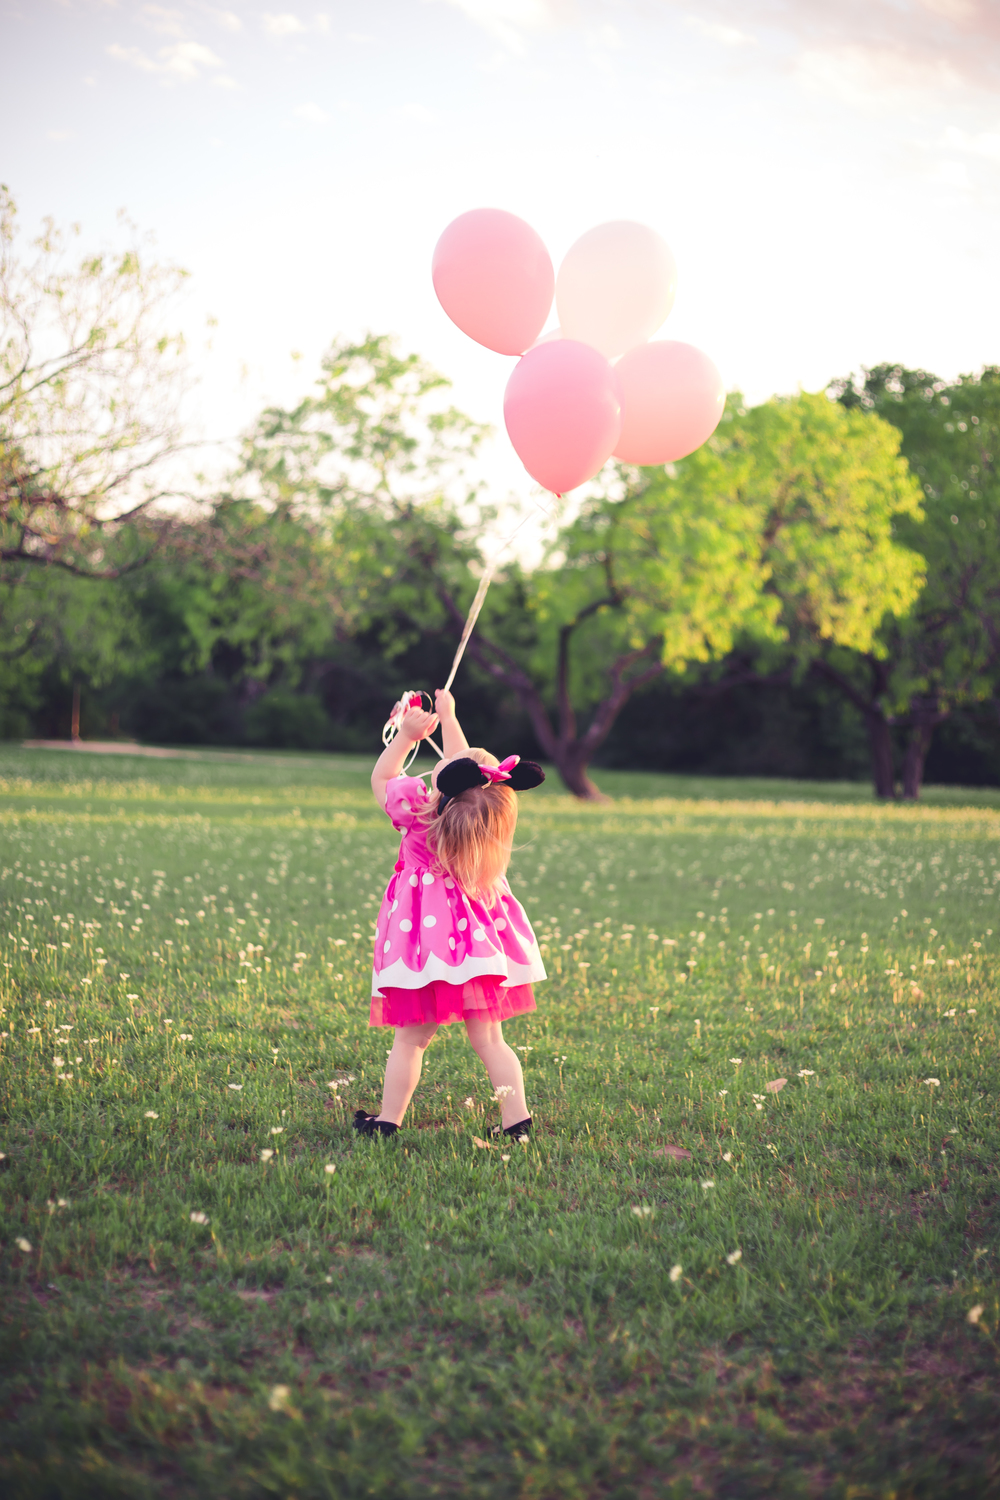 Loved getting this candid shot at the end when she got to take the balloons home!